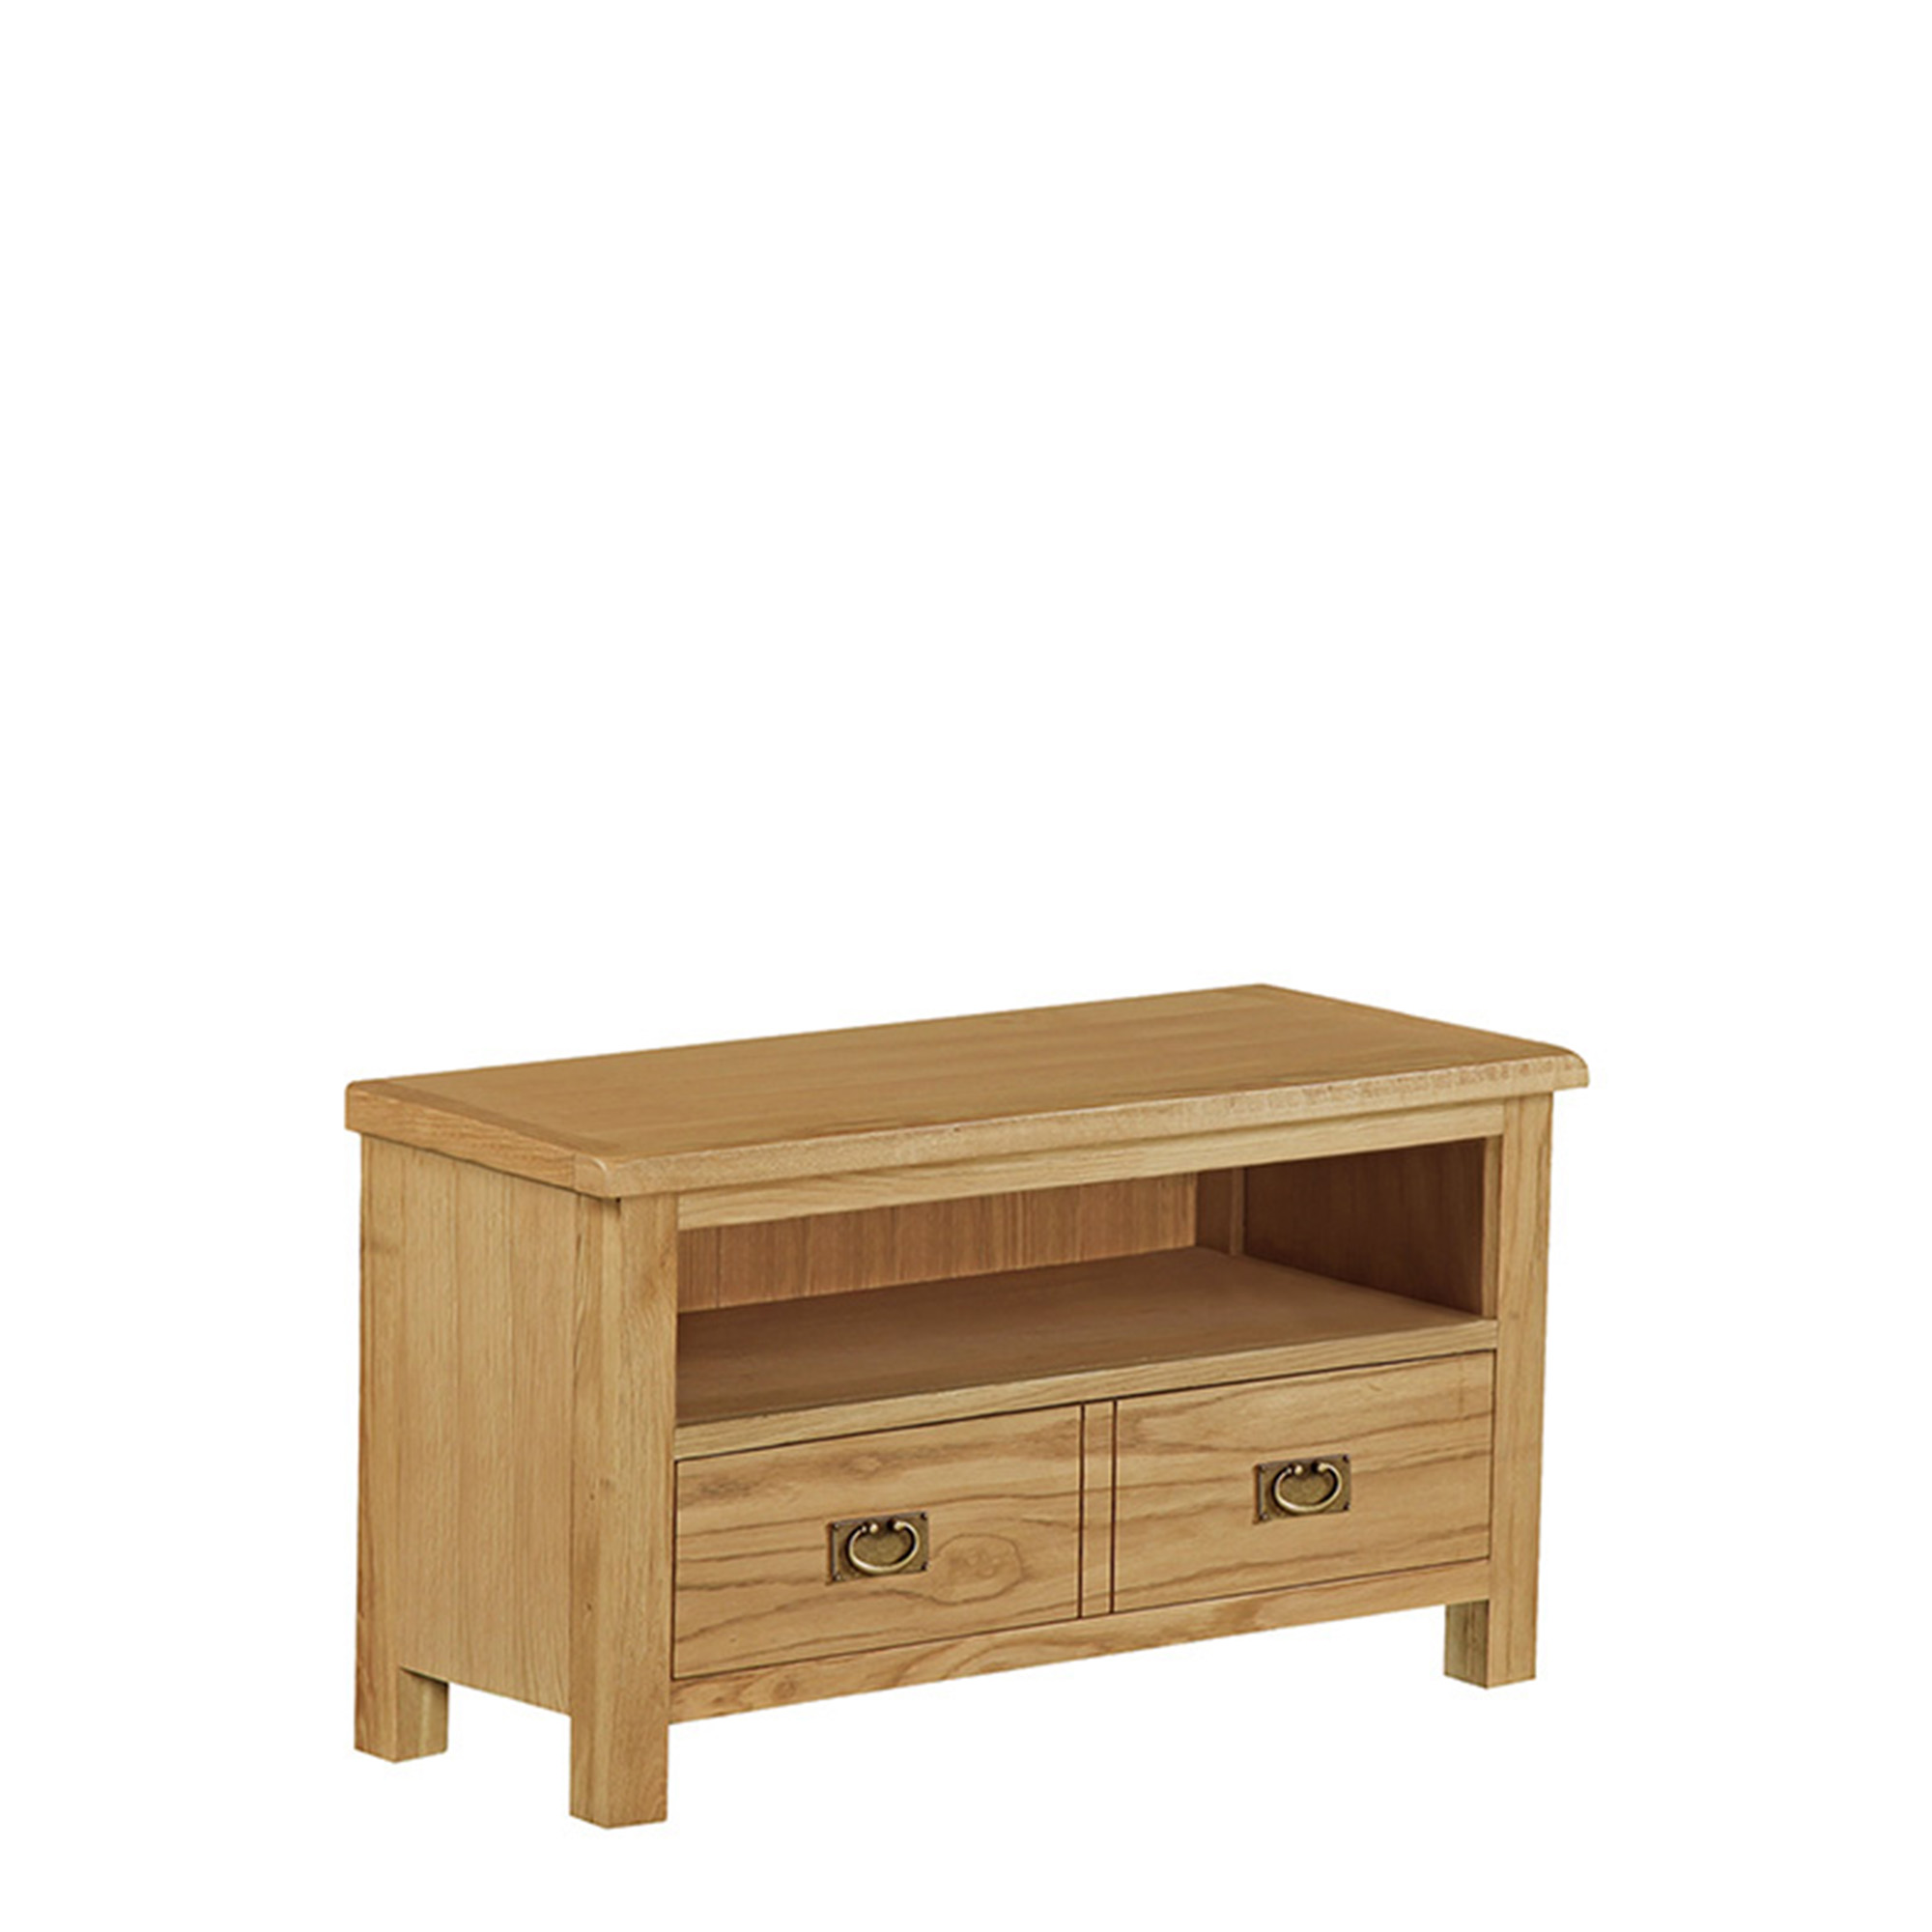 Triumph Small Wood Tv Stand Fishpools